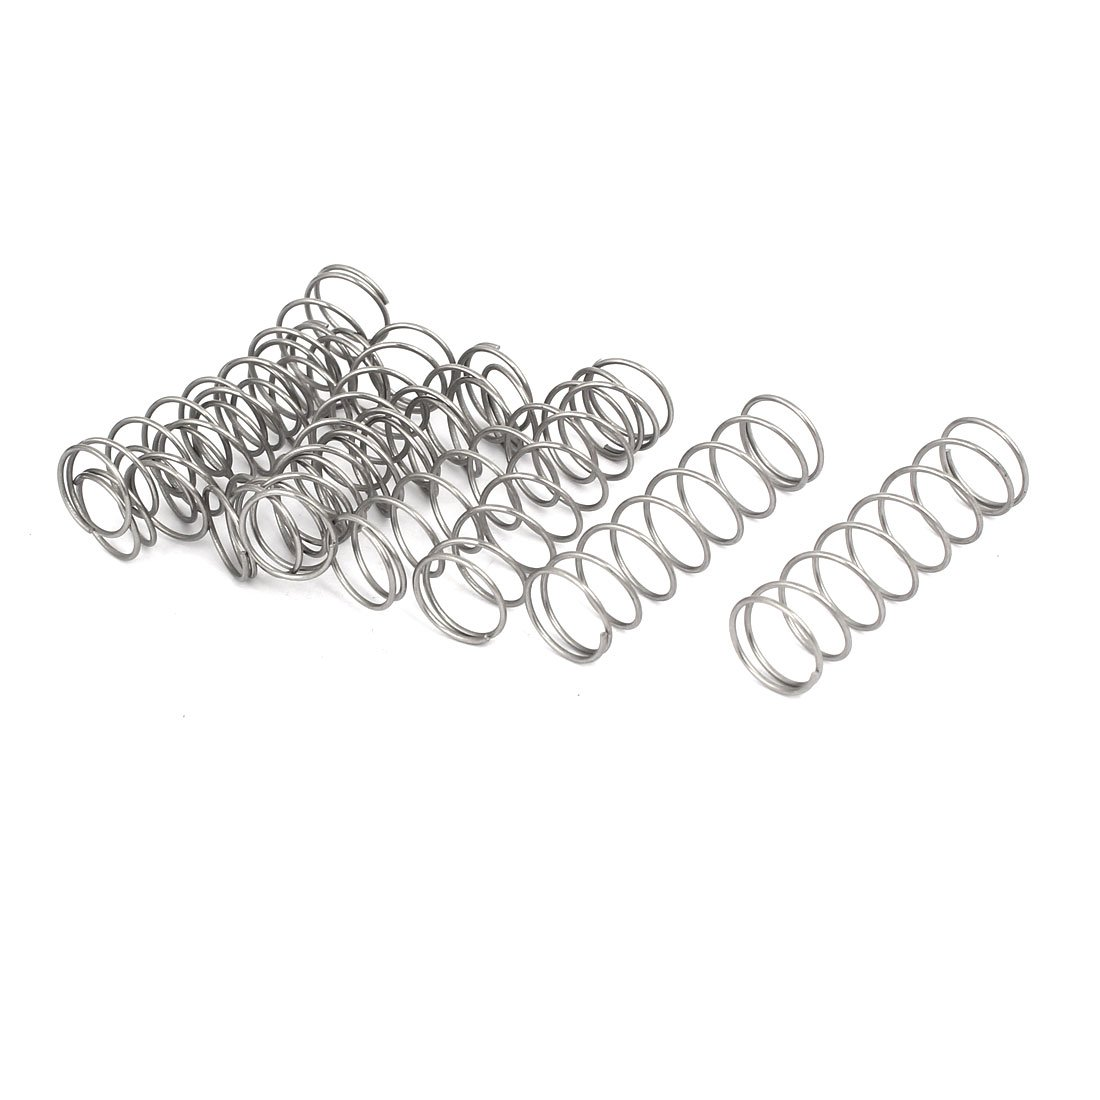 uxcell Max 44% OFF Compression Spring Time sale 304 Stainless Wire 12mm OD 0.8mm Steel